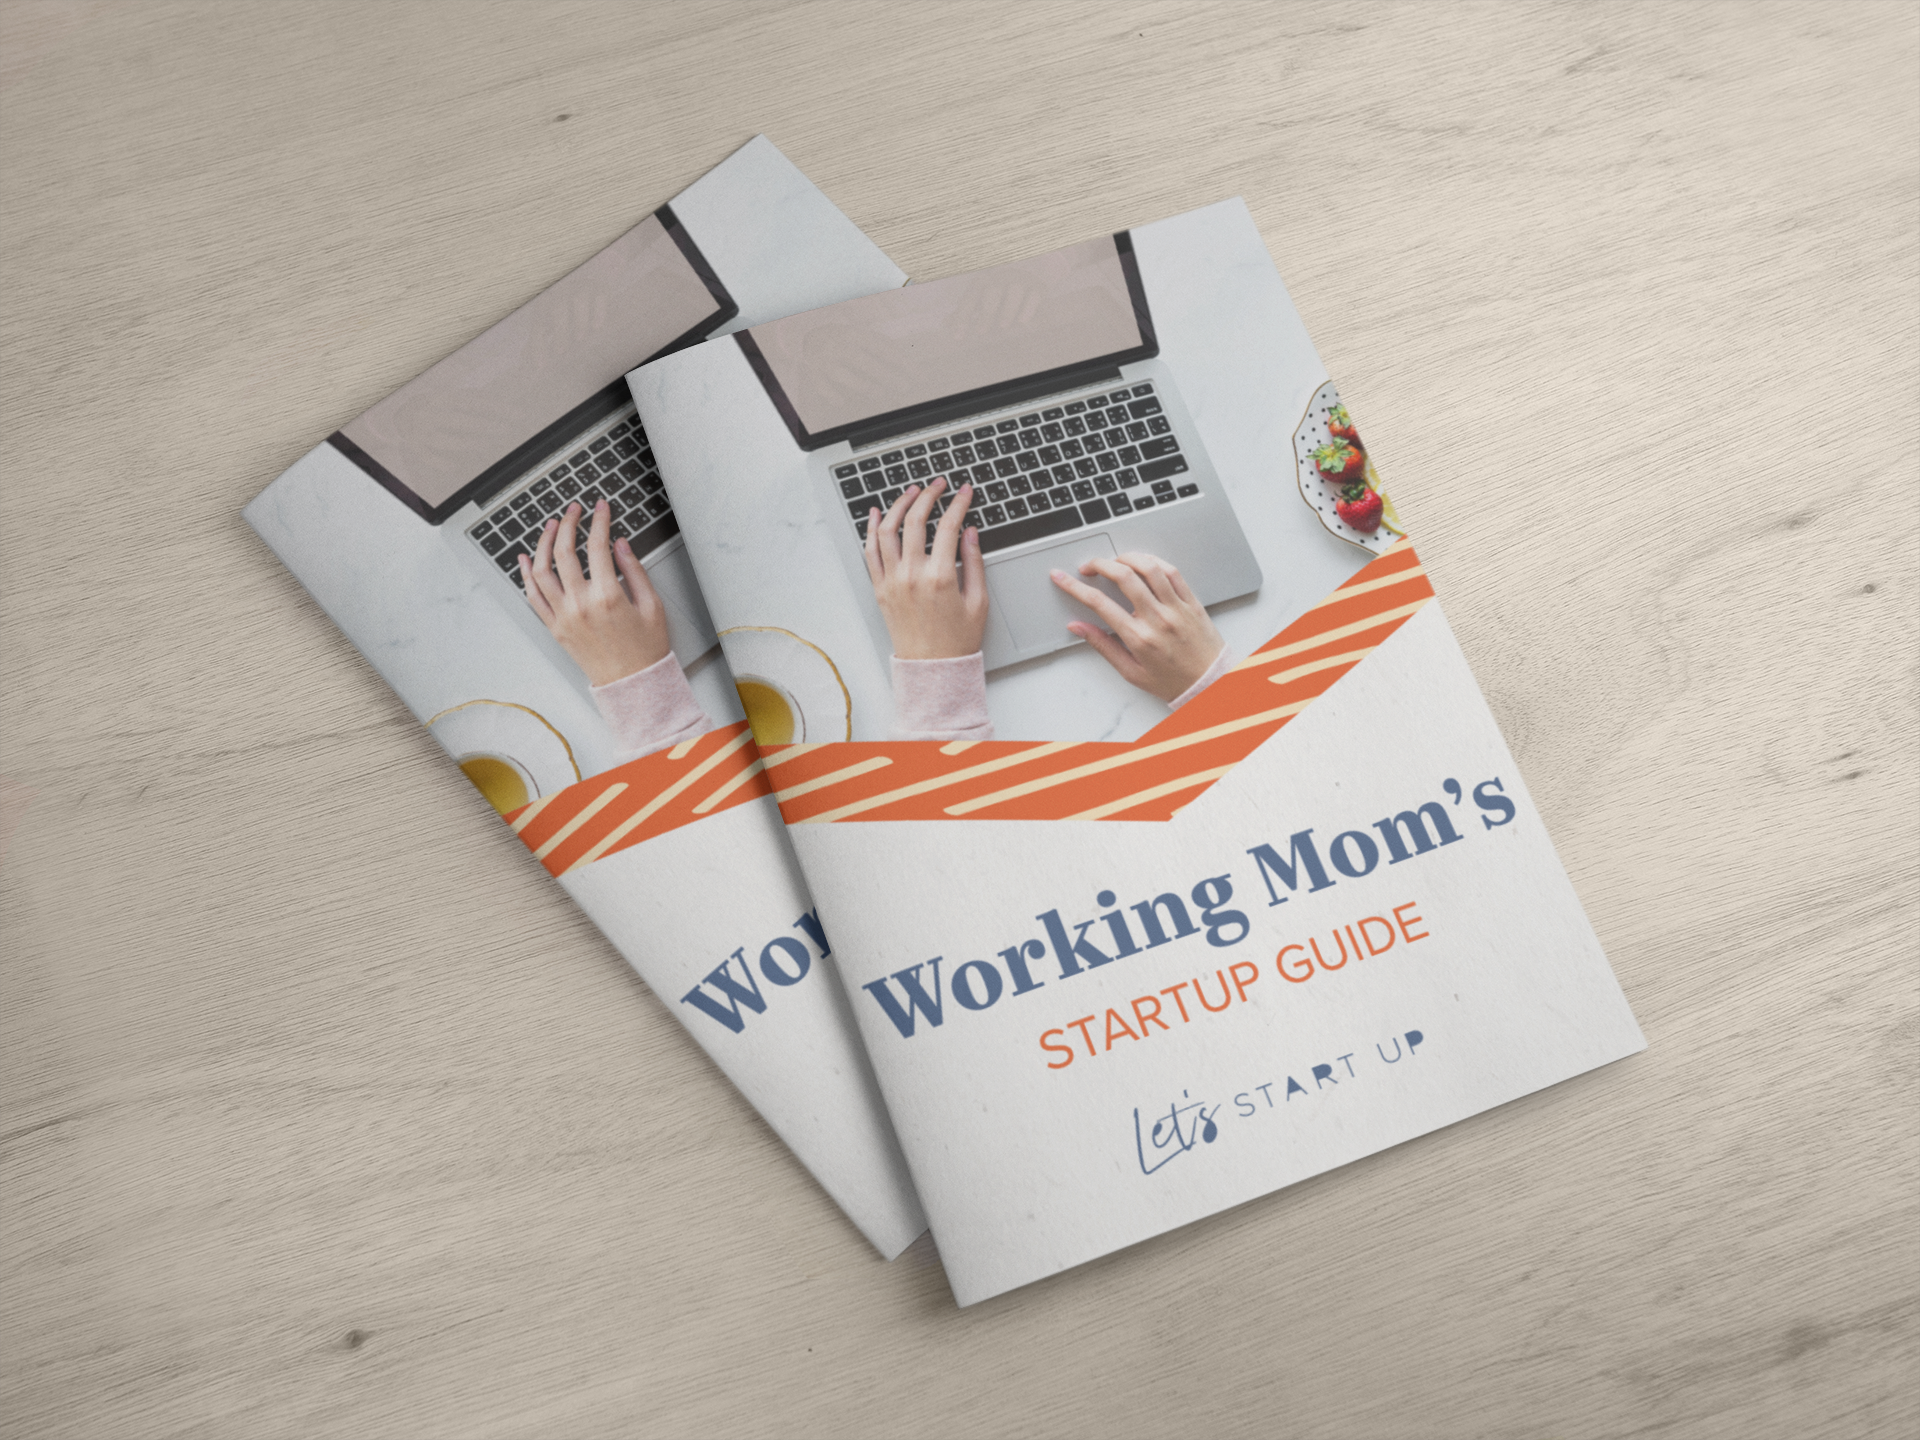 Working Mom's StartUp Guide